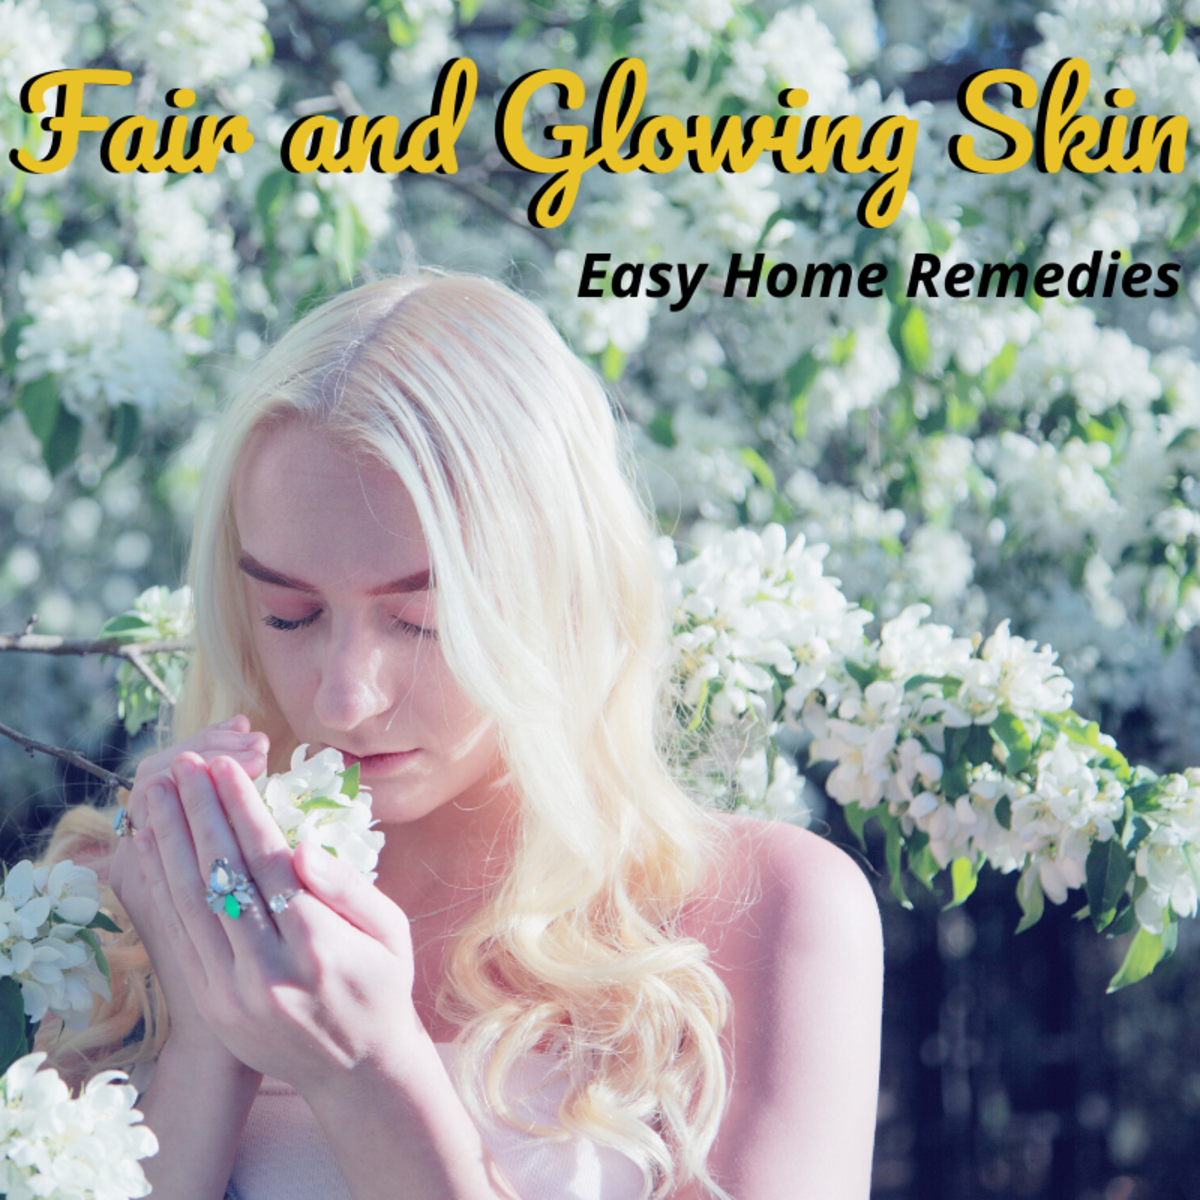 The Best Home Remedies for Fair and Glowing Skin